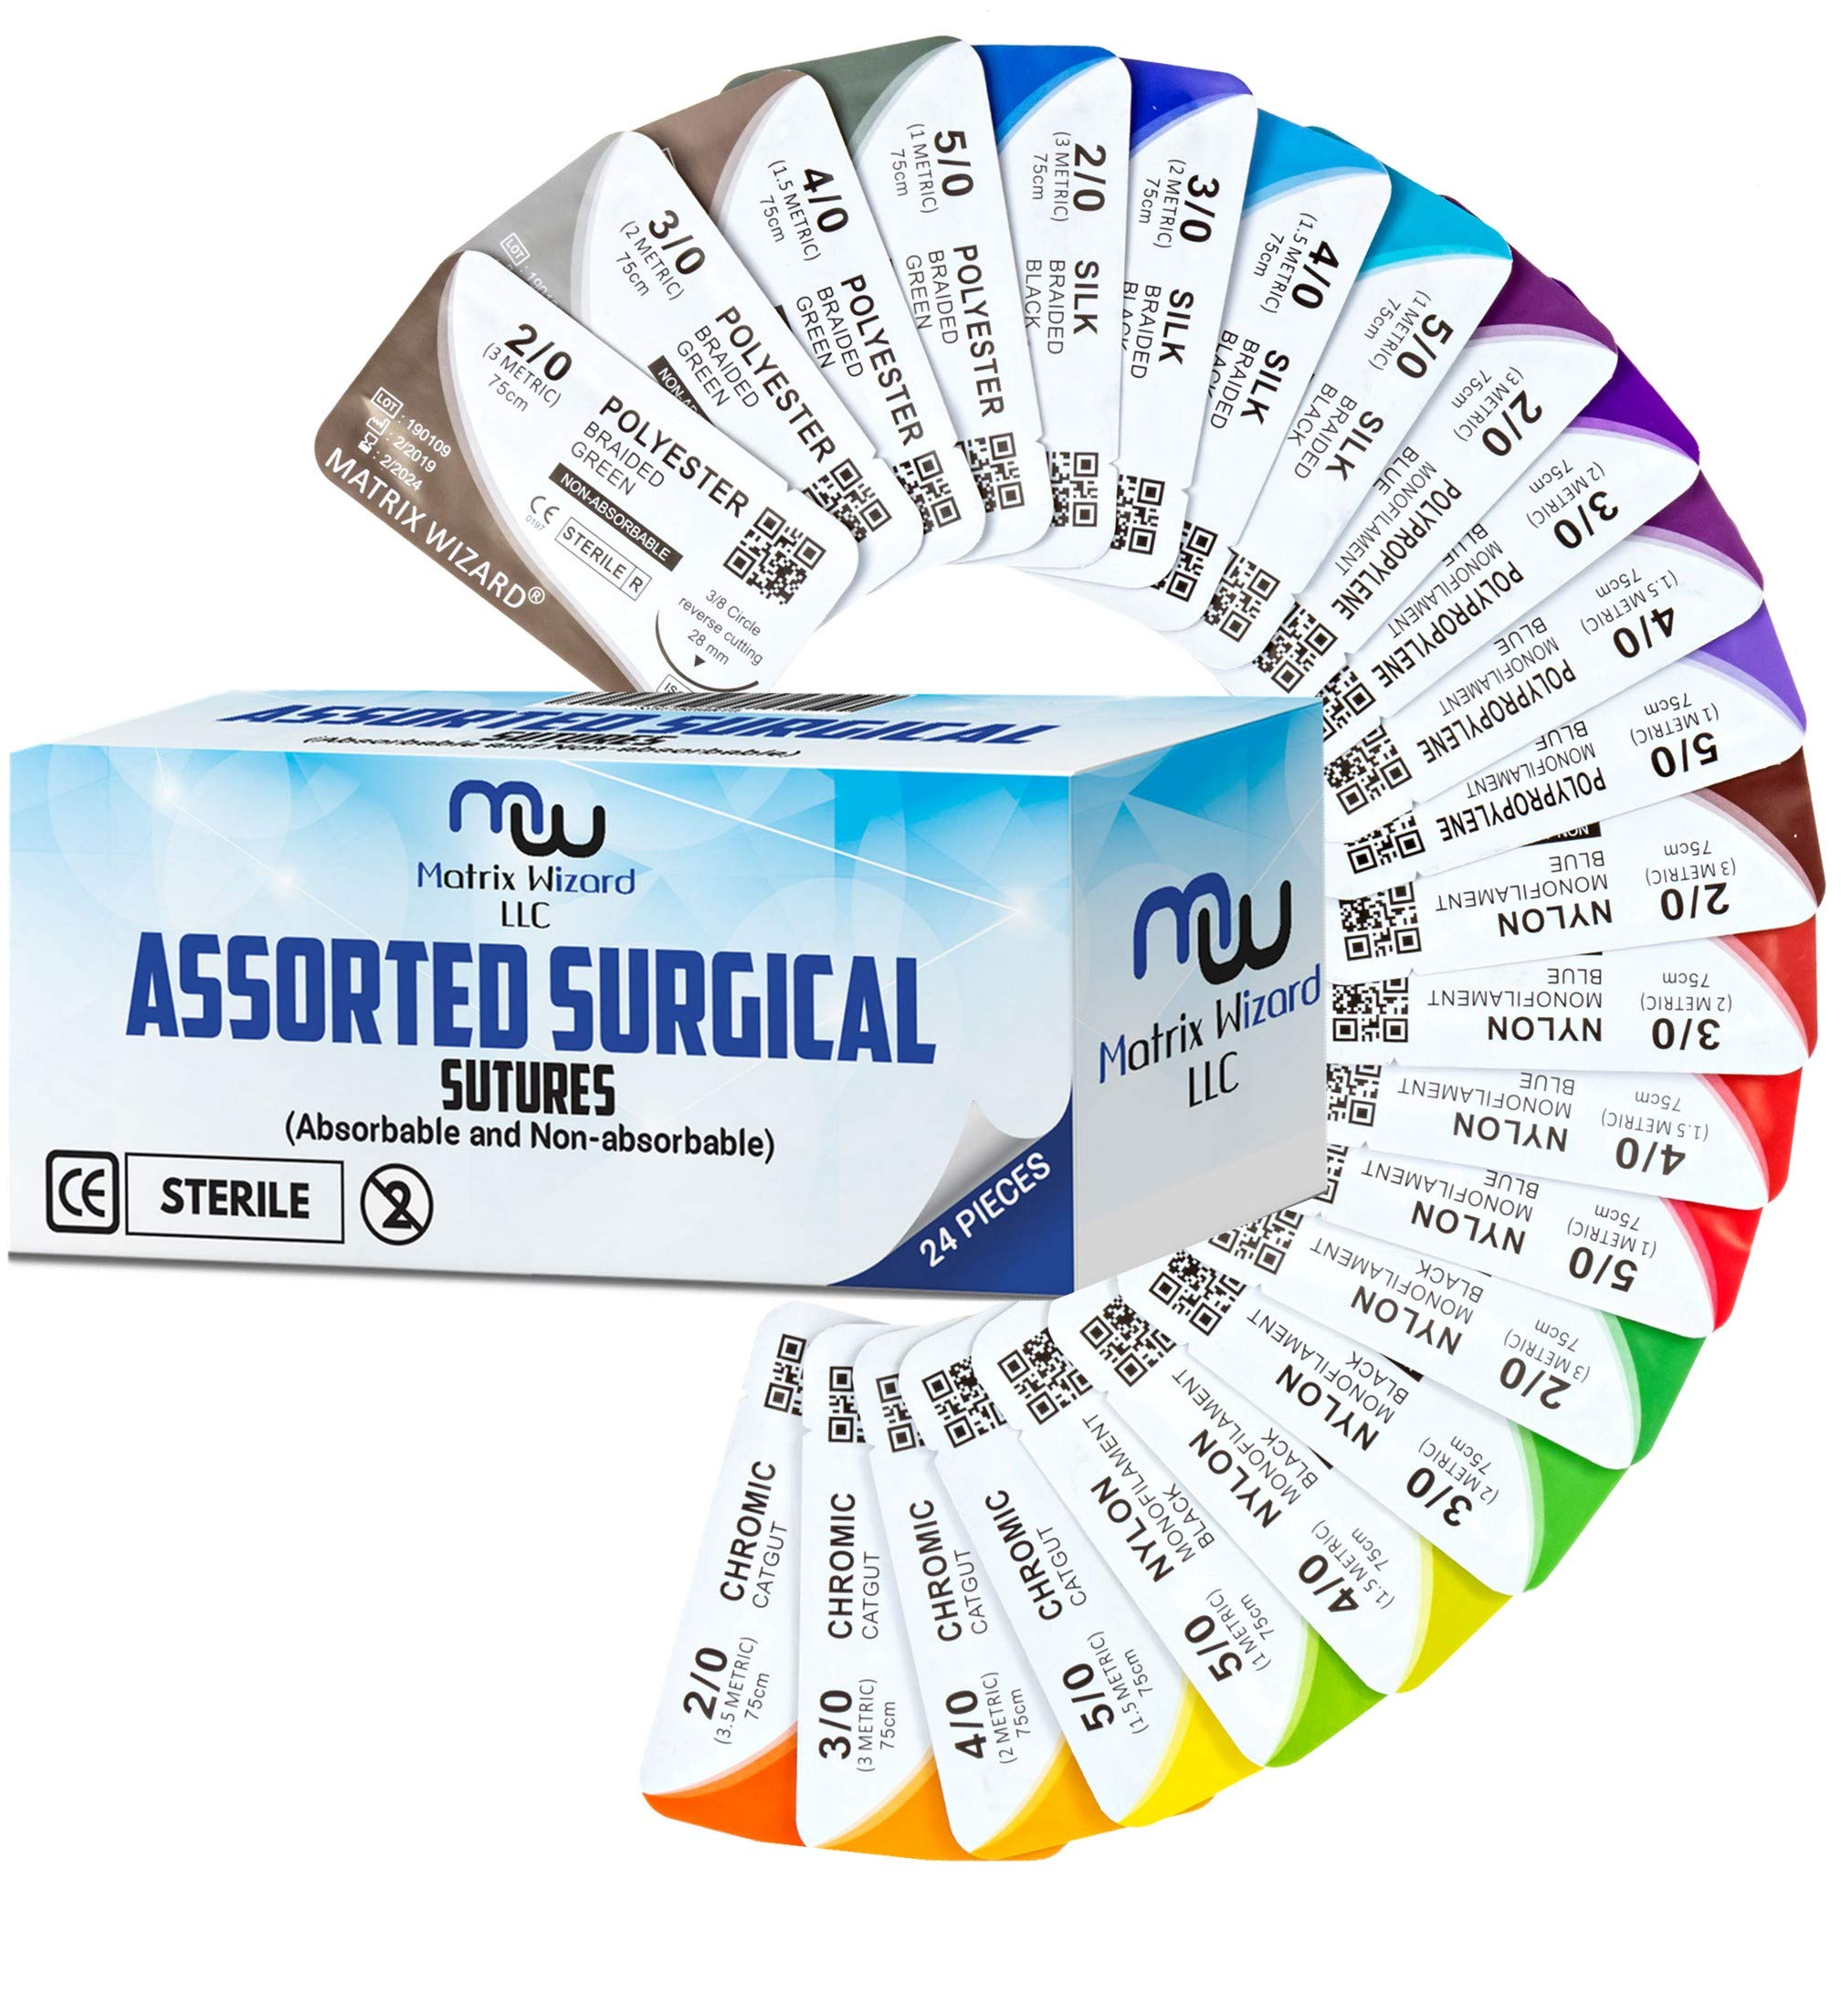 Mixed Sutures Thread with Needle (Absorbable: Chromic Catgut; Non-Absorbable: Nylon, Silk, Polyester, Polypropylene) - Surgical Wound Practice Kit, Emergency First Aid Demo (2-0, 3-0, 4-0, 5-0) 24Pk by Matrix Wizard (Image #1)